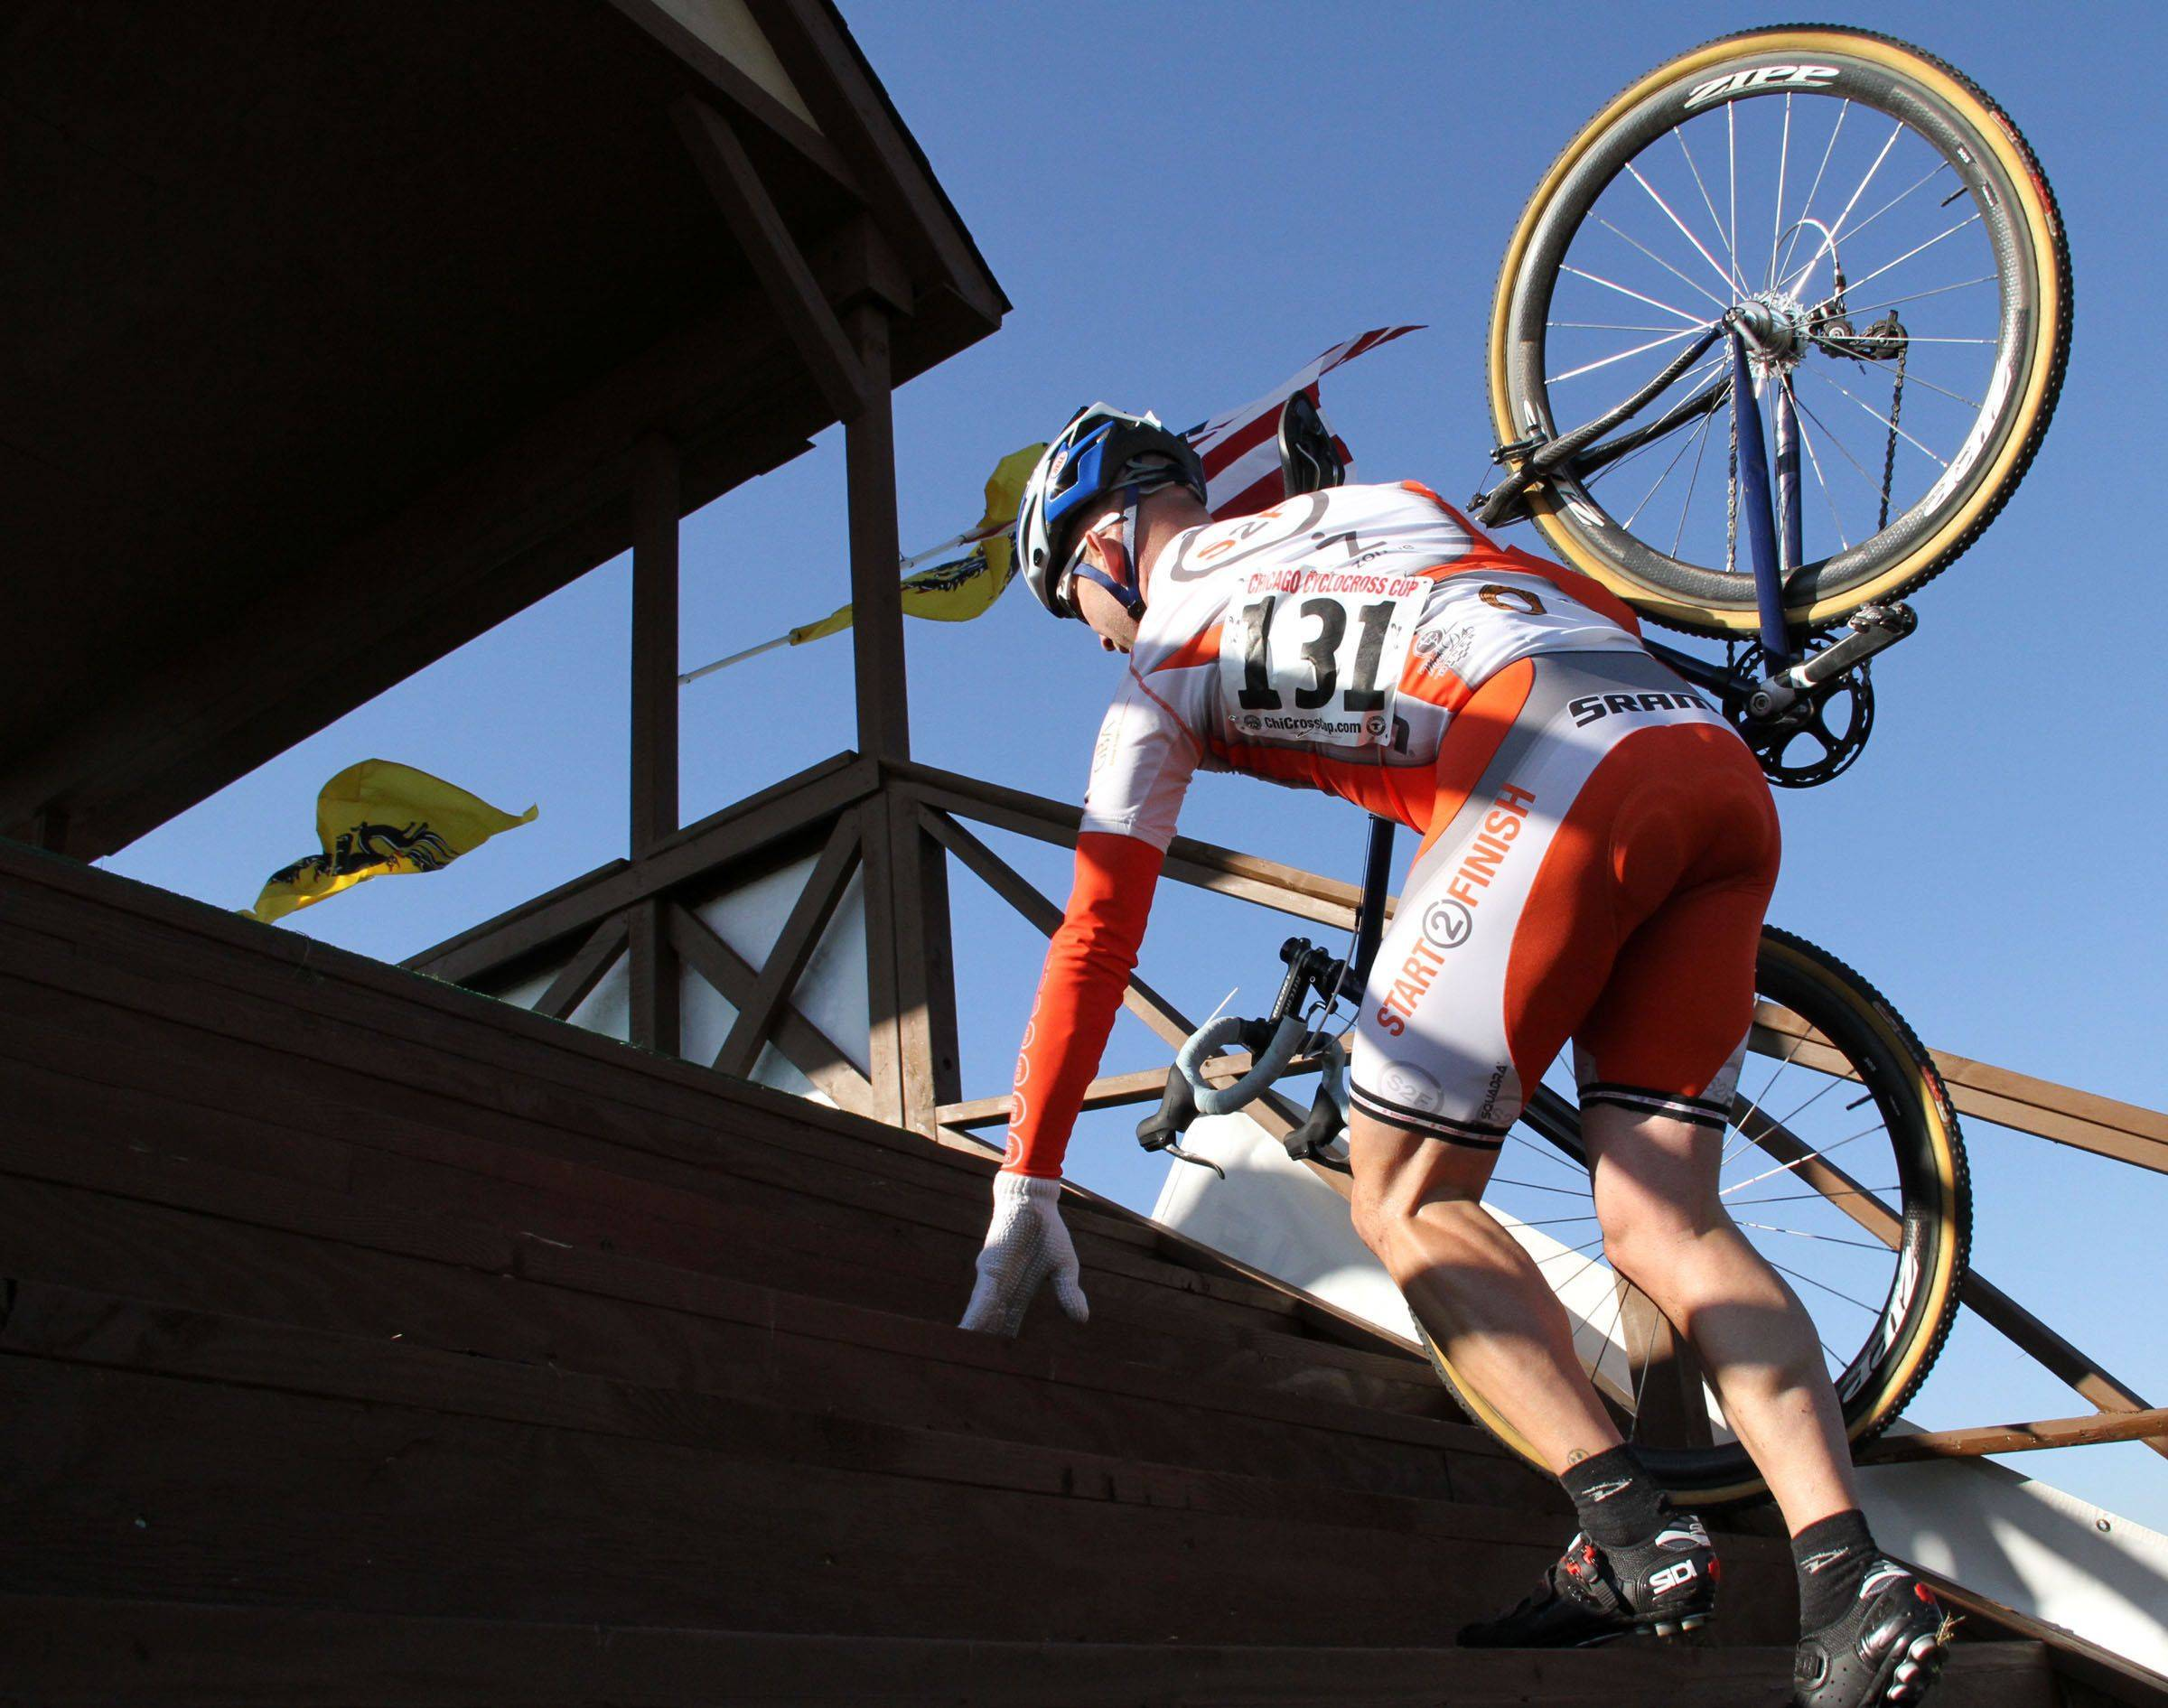 Peter Rolewicz of Chicago of the Start2Finish race team carries his bike up the fly-over bridge during the Masters 40+ race during the Chicago Cyclocross Cup Race at The Golf Farm in Wauconda on Saturday, October 16.